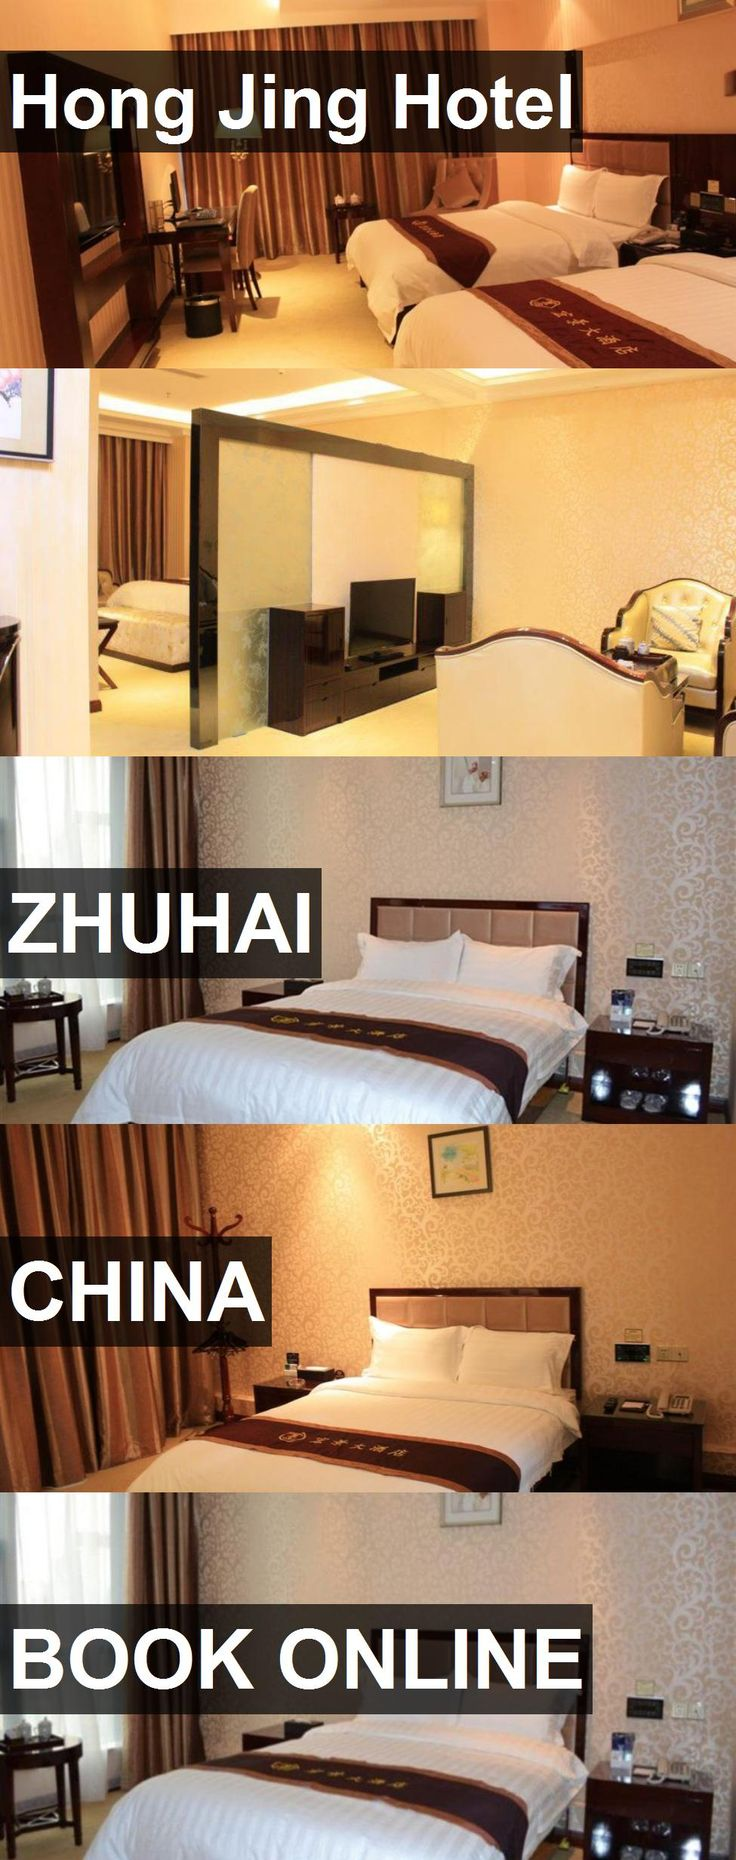 Hong Jing Hotel in Zhuhai, China. For more information, photos, reviews and best prices please follow the link. #China #Zhuhai #travel #vacation #hotel